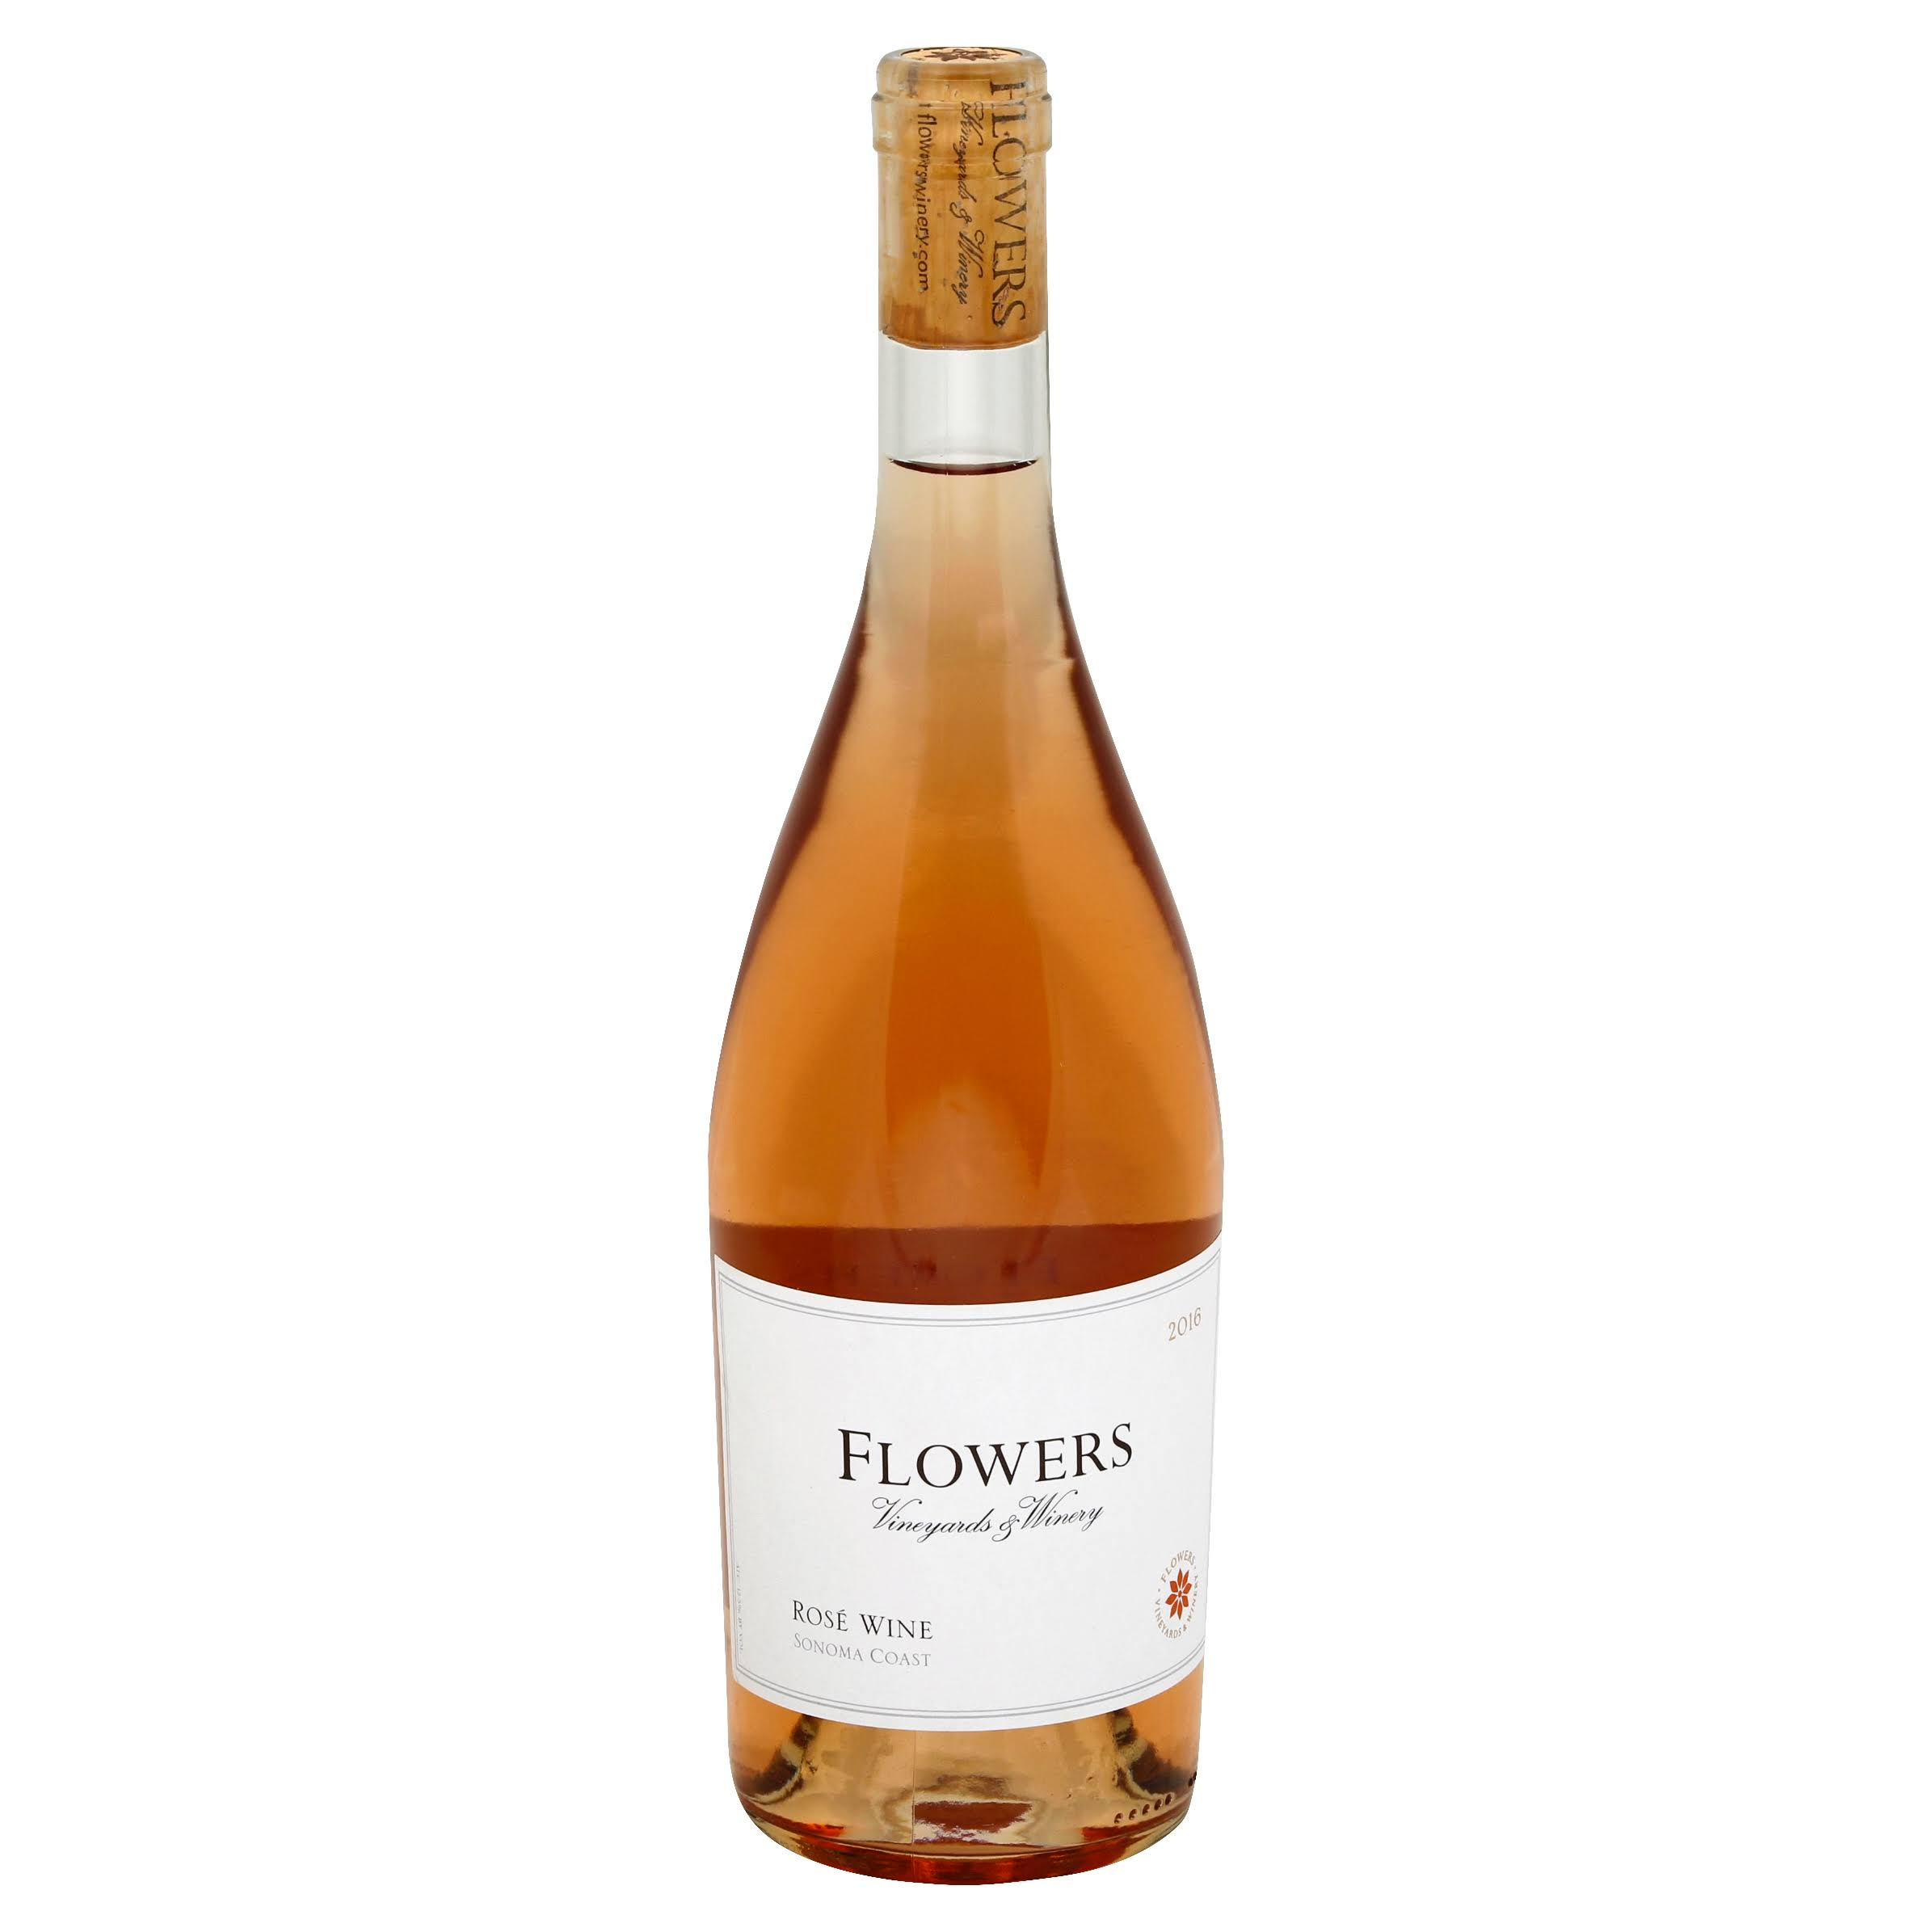 Flowers Rose of Pinot Noir, Sonoma Coast, 2016 - 750 ml